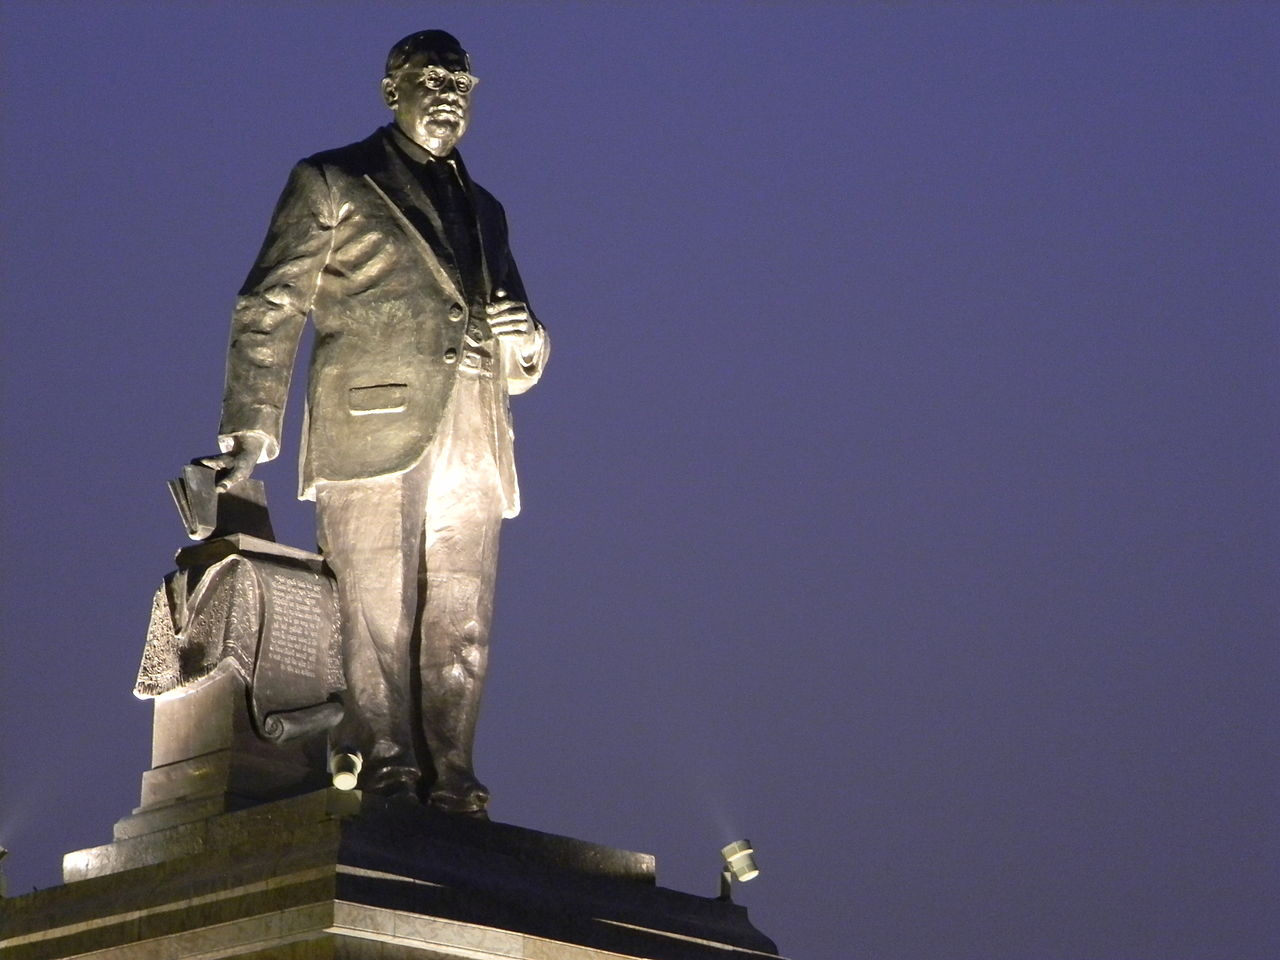 A statue of B.R. Ambedkar inside the park that bears his name in Lucknow, Uttar Pradesh. Credit: Kg.iitb/Wikimedia Commons, CC BY-SA 3.0